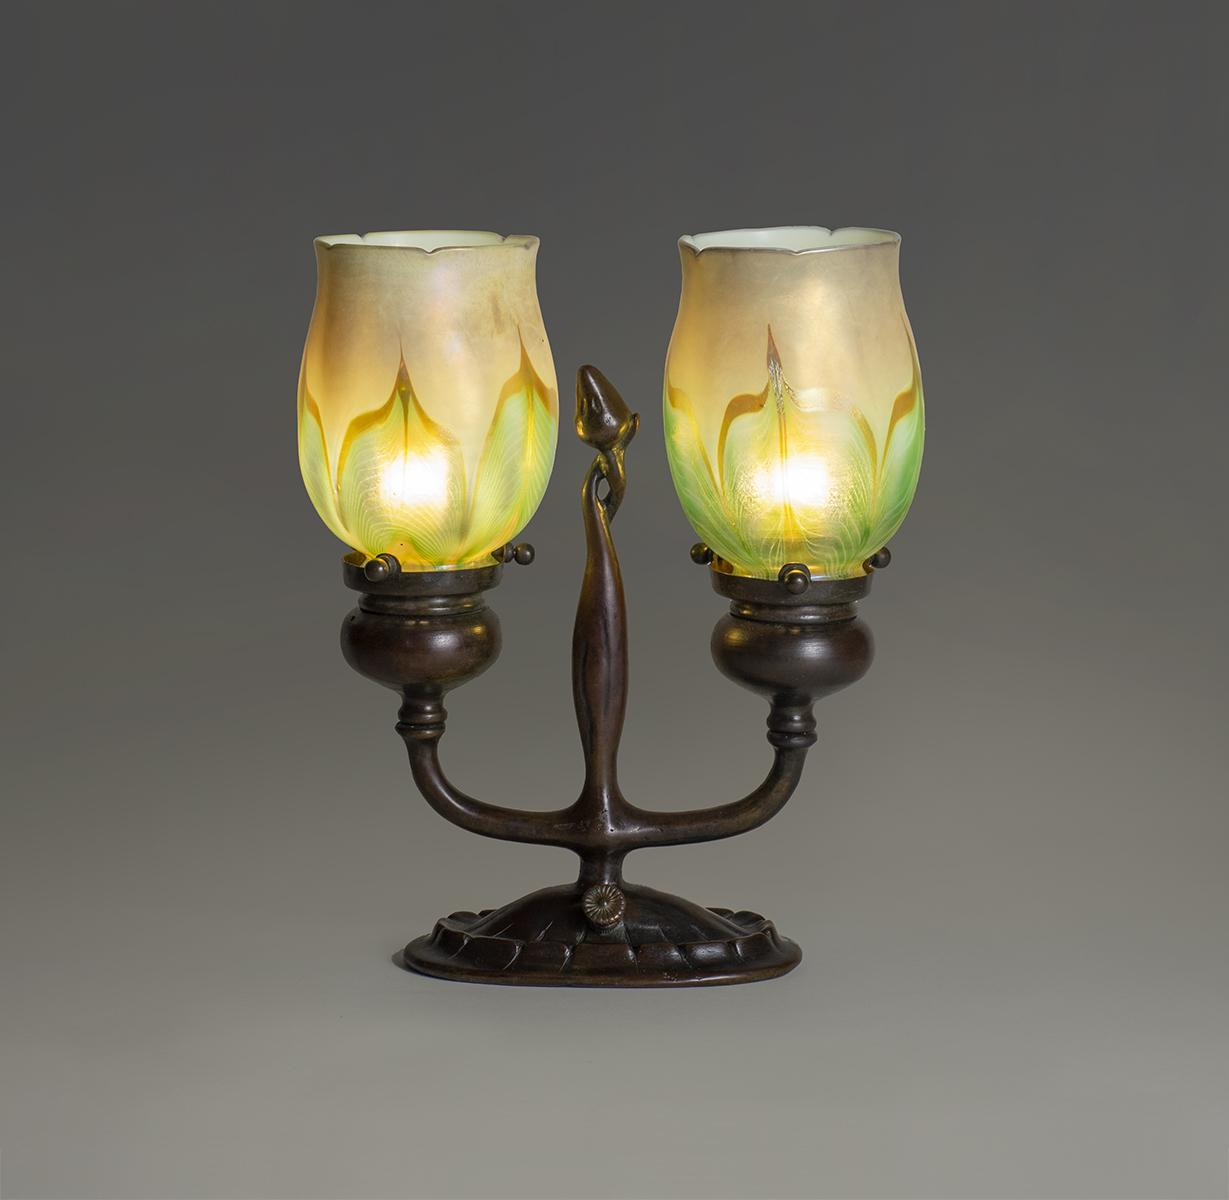 Tiffany Studios  Electrified Candelabrum 1